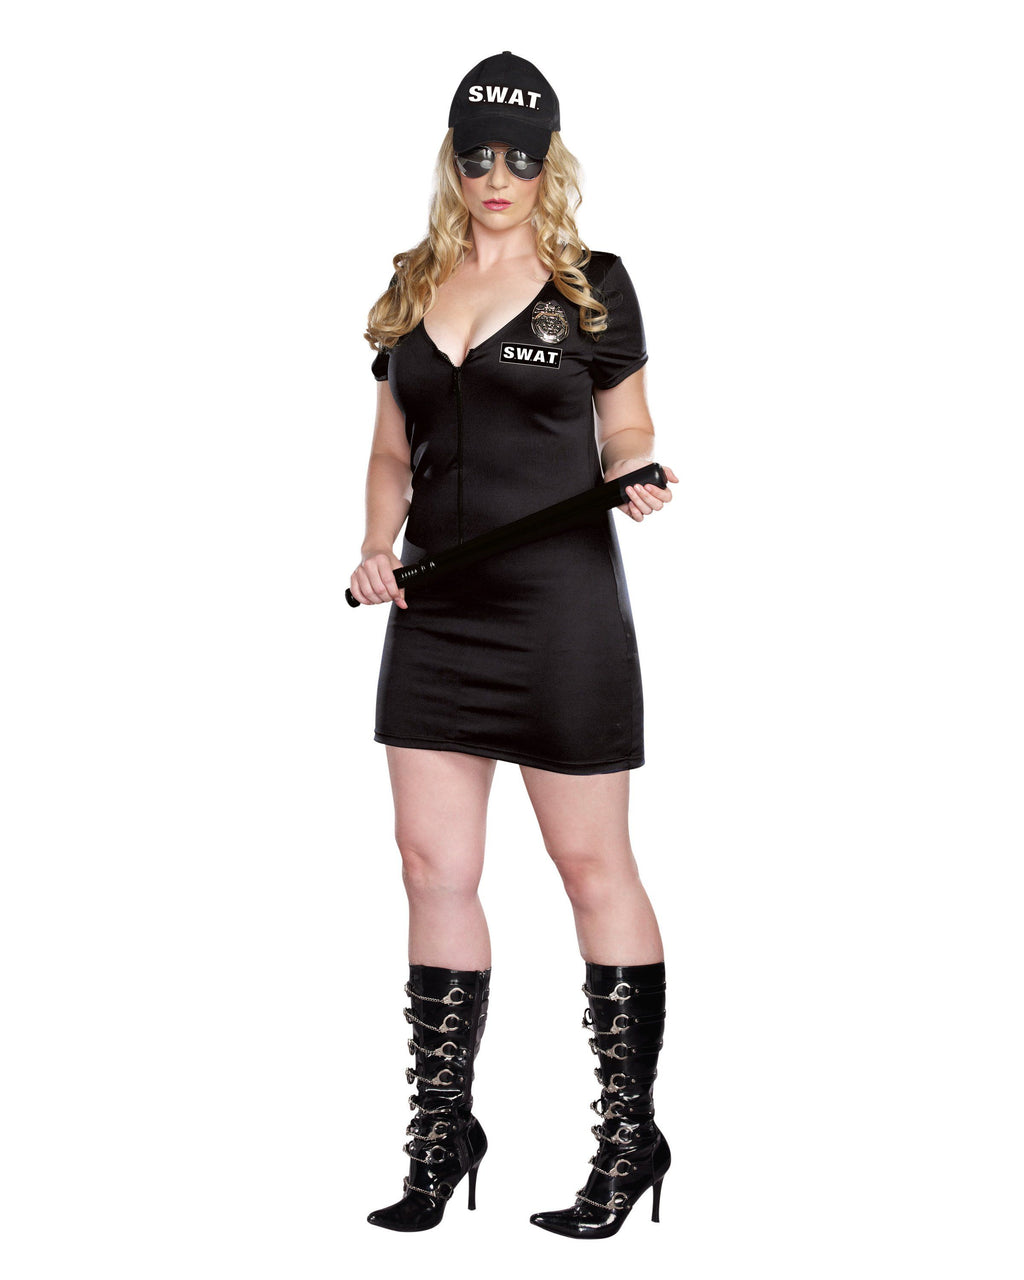 Plus Size SWAT Police - Black Women's Costume Dreamgirl Costume